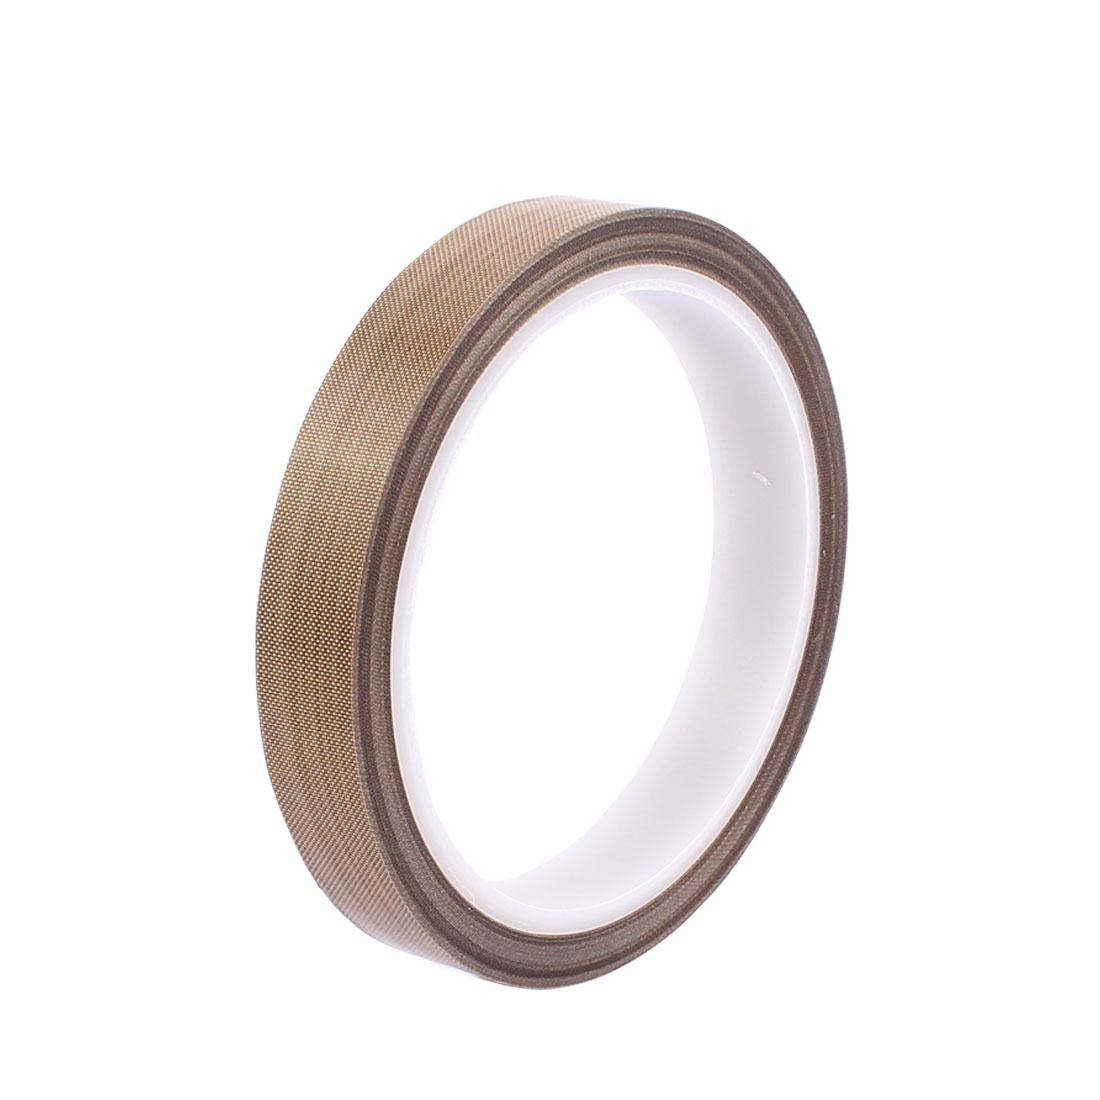 12mm Width 0.18mm Thickness 10M Long Nonstick High Temperature PTFE Adhesive Tape